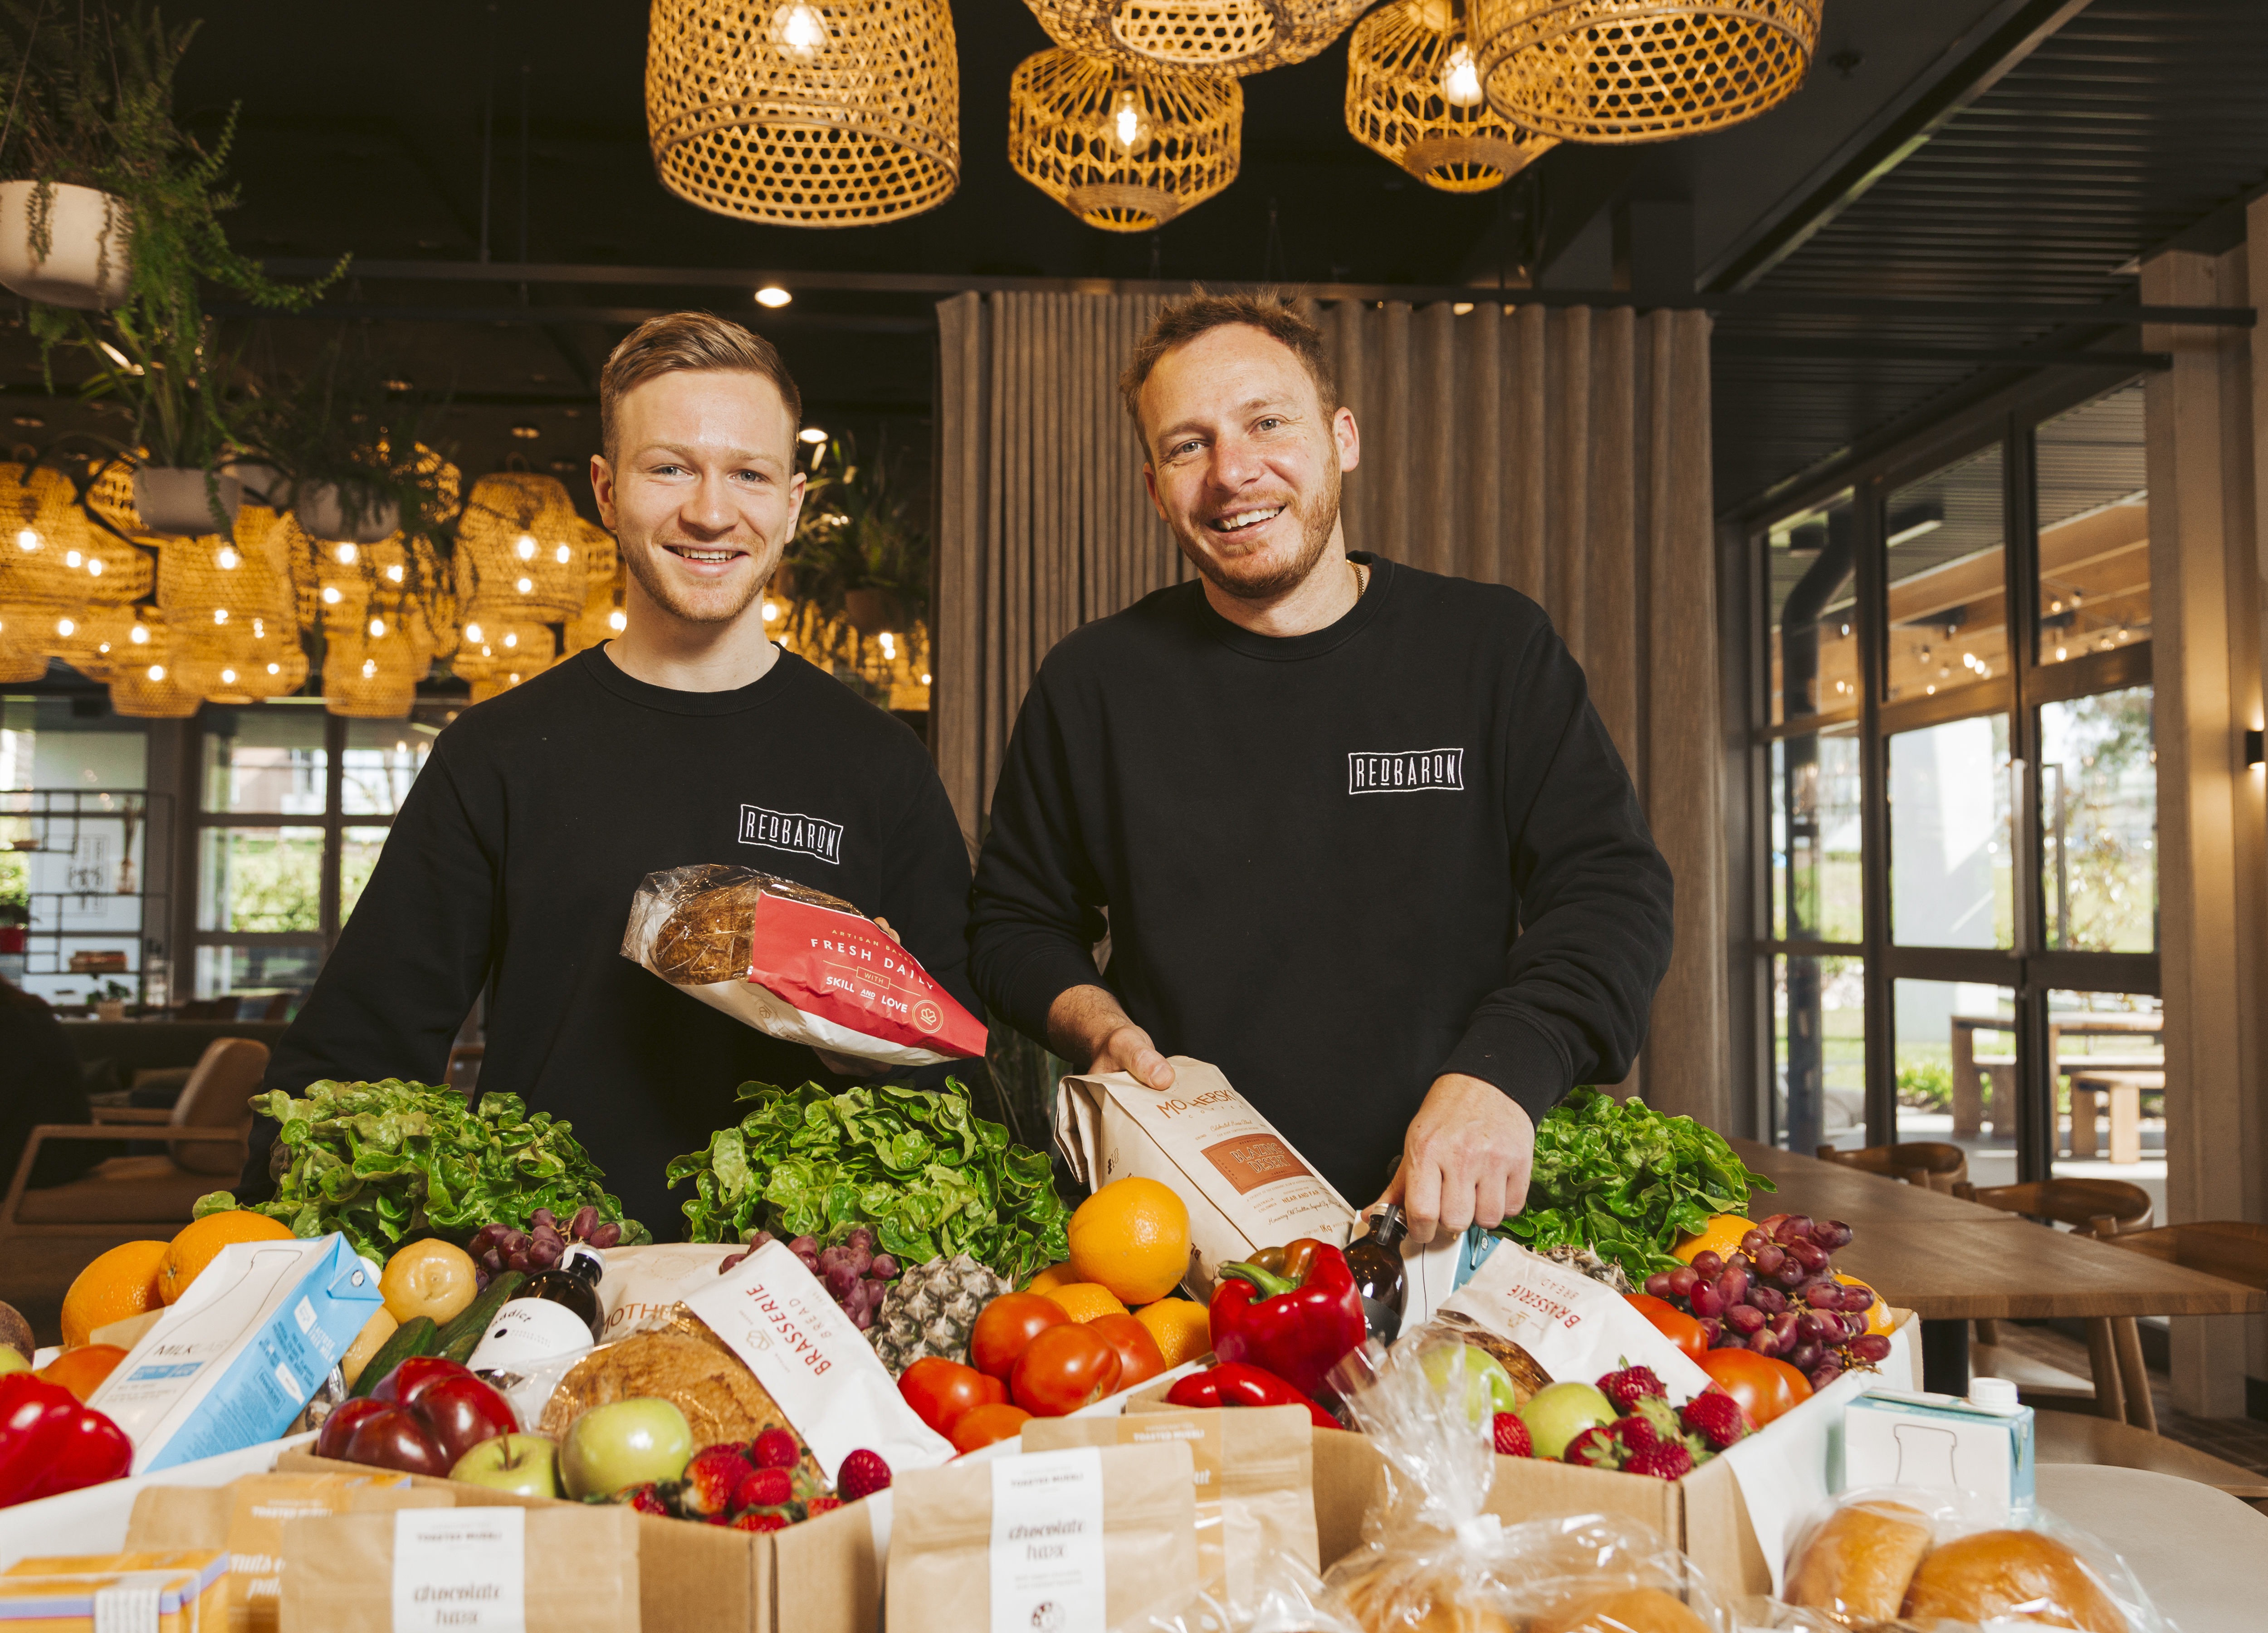 Two men standing behind boxes of fresh produce.